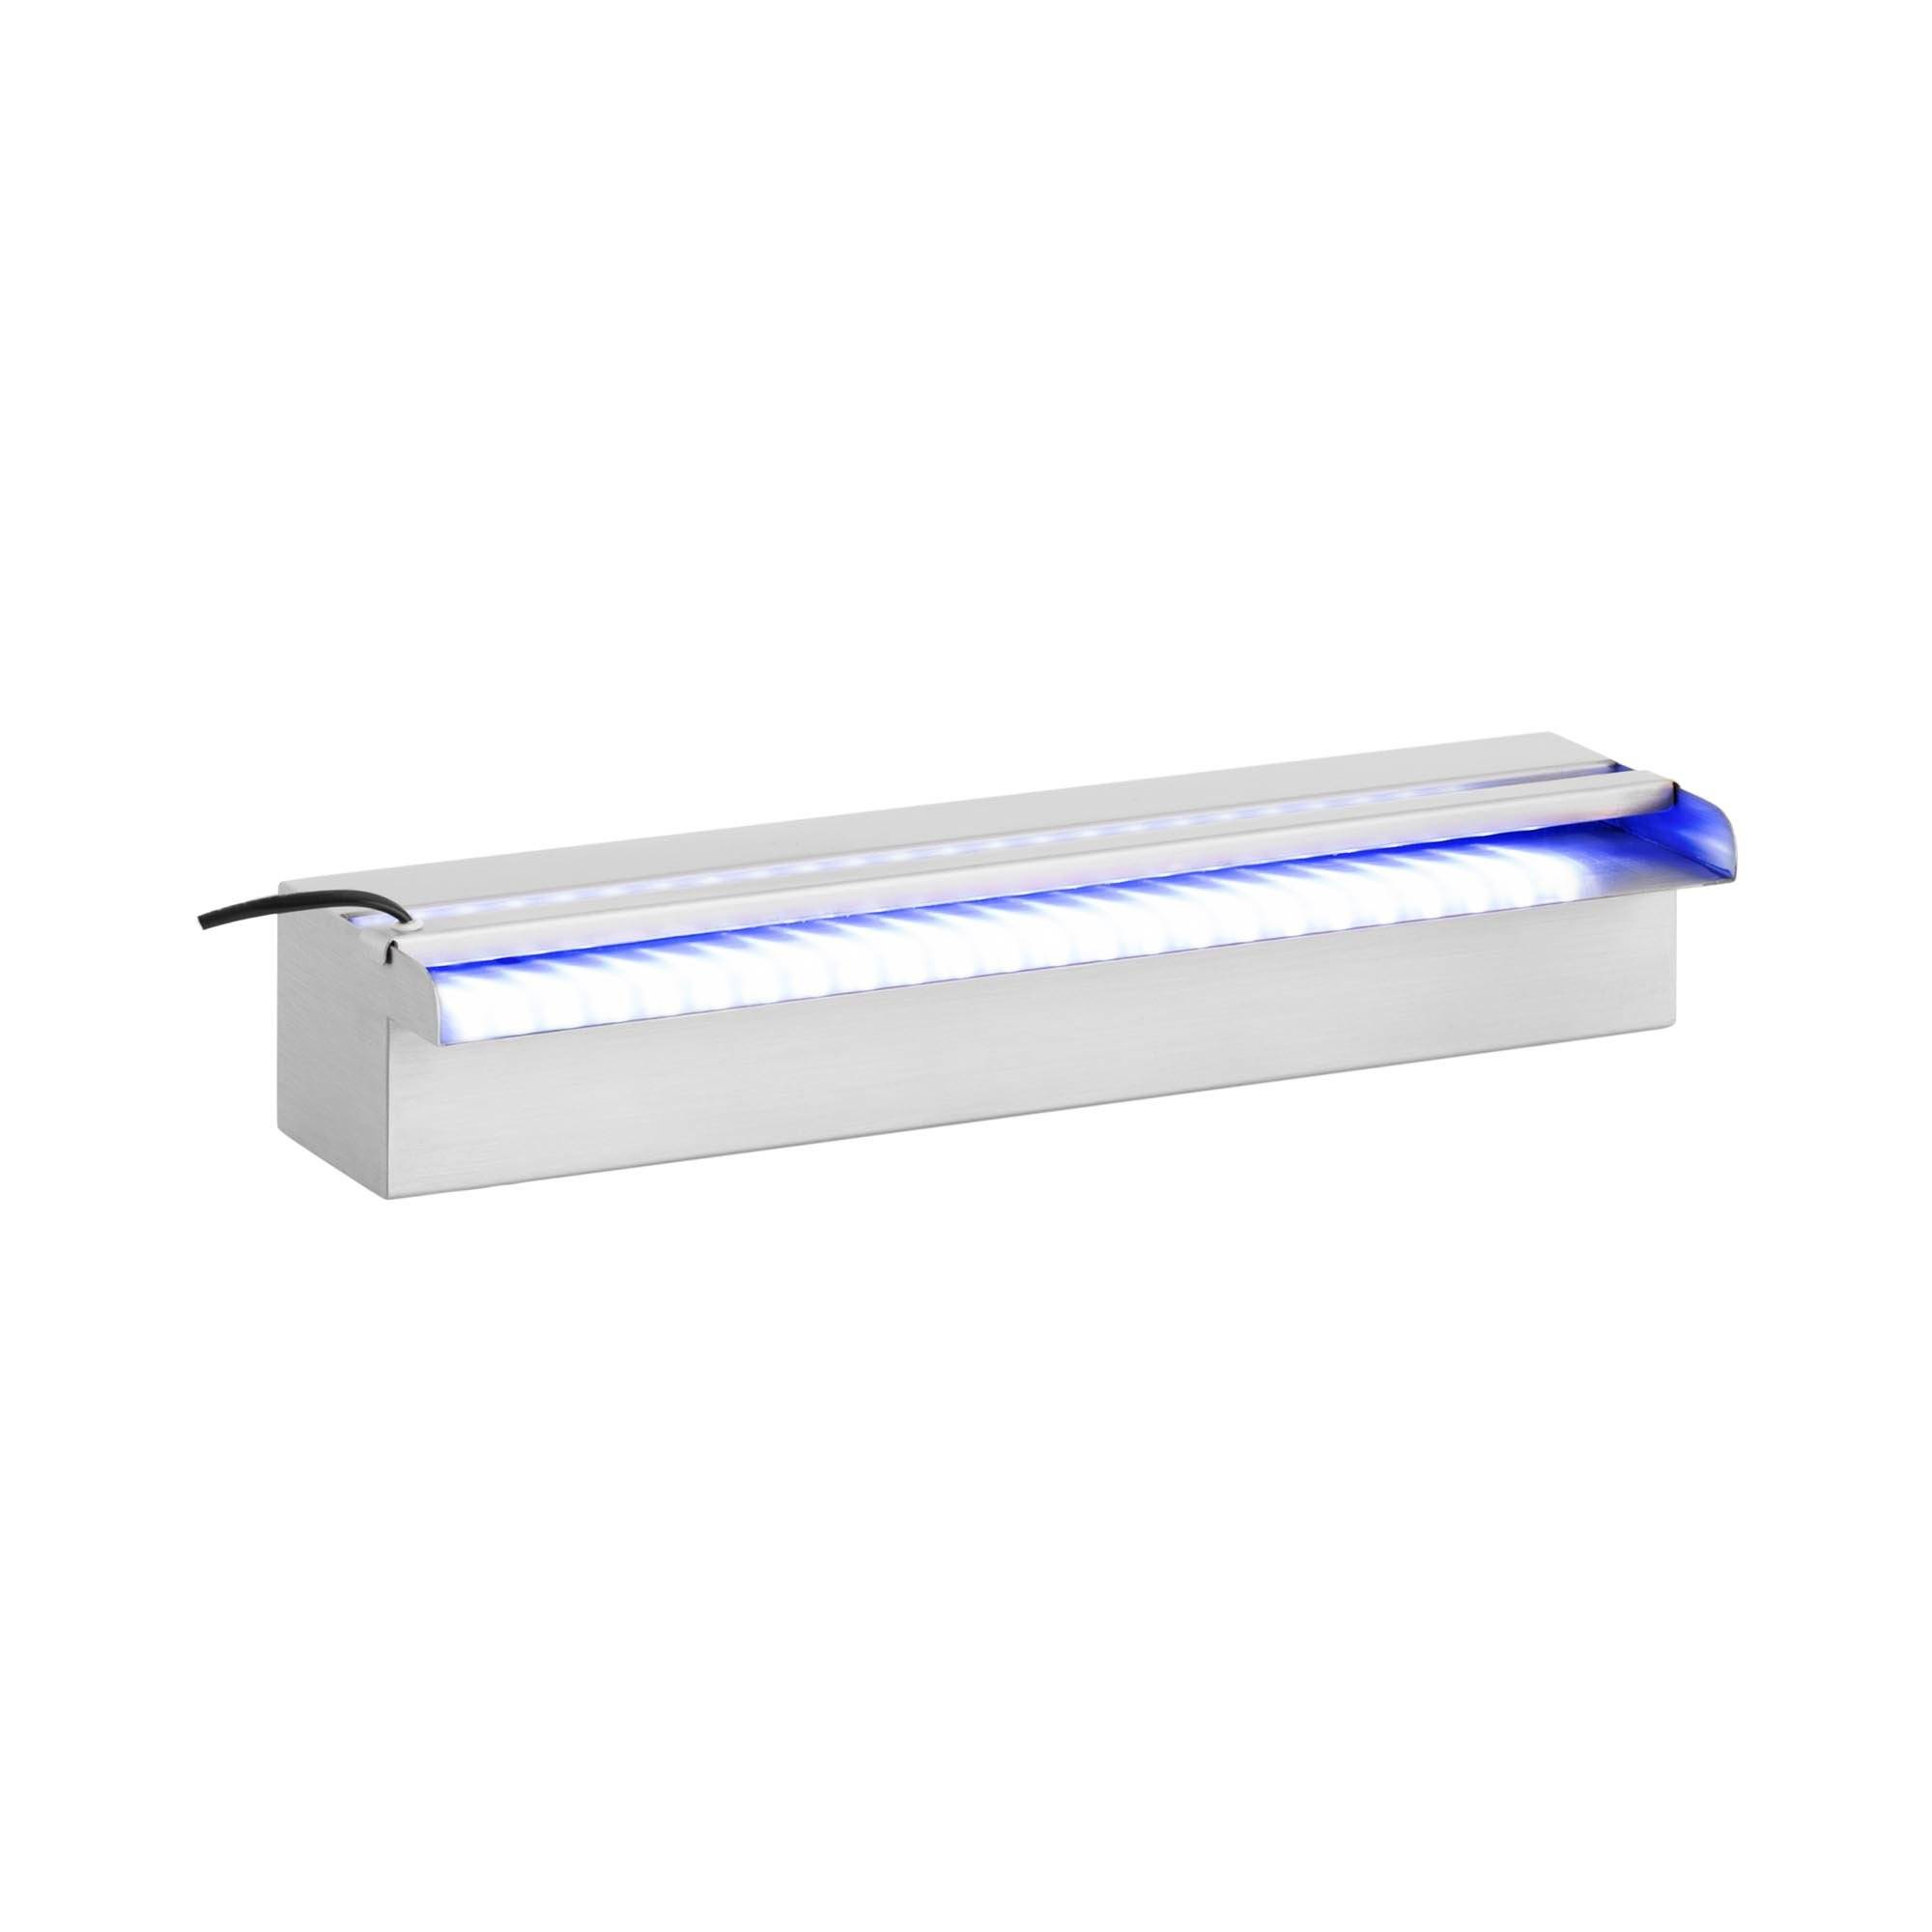 Uniprodo Fontaine piscine - 45 cm - Éclairage LED UNI_WATER_08